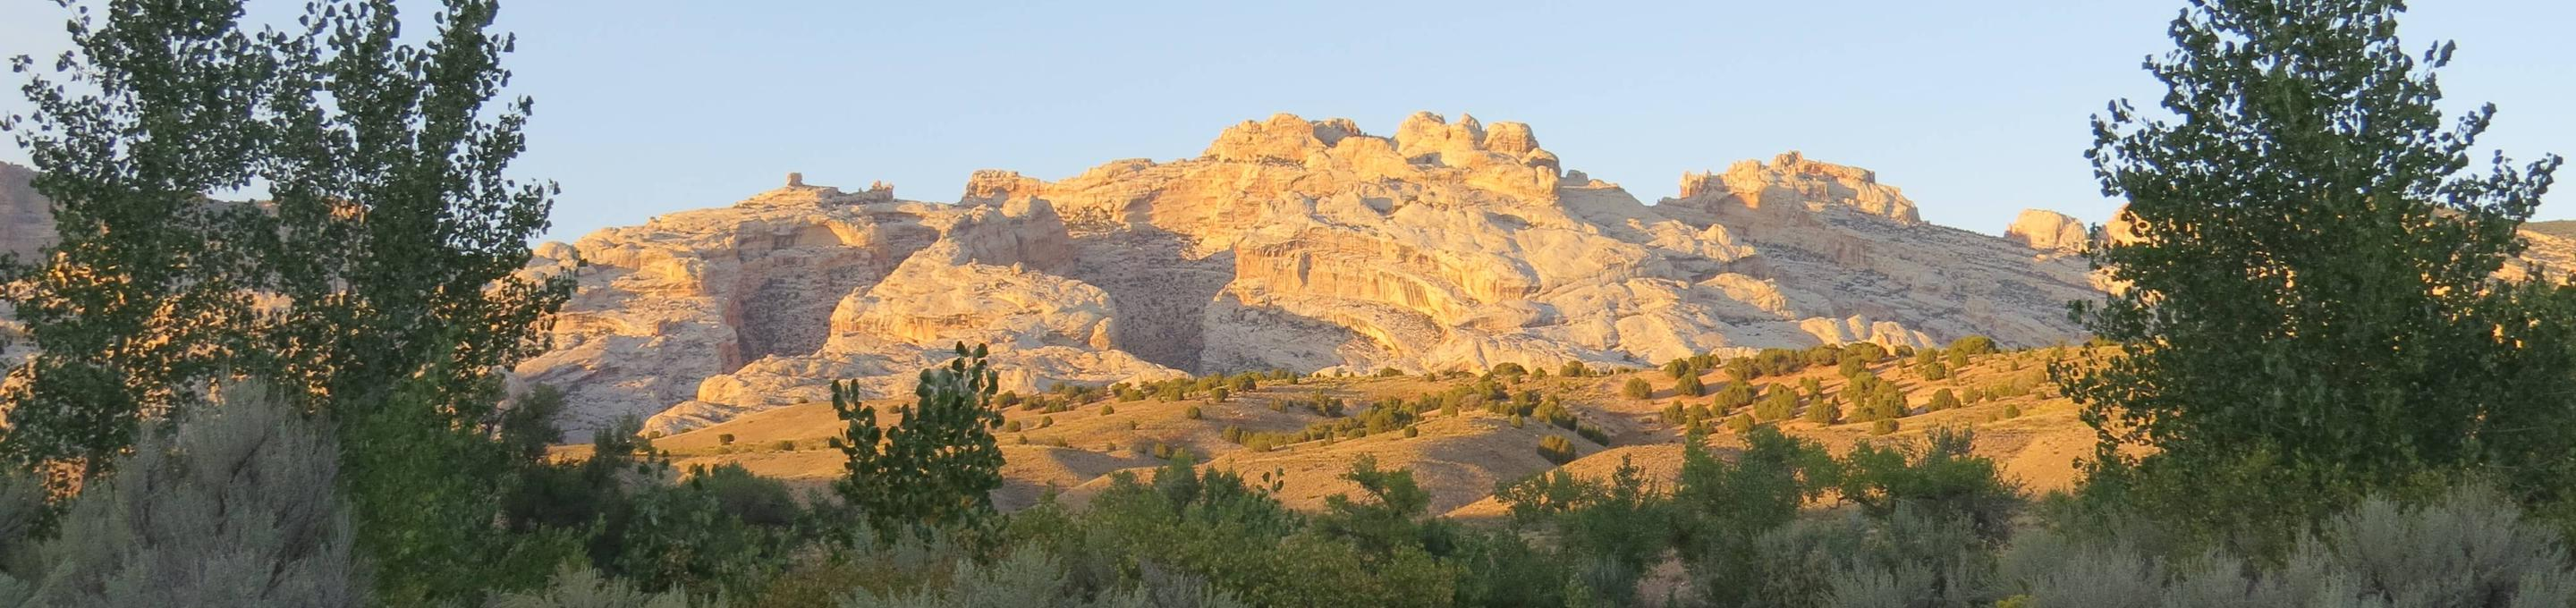 Split mountain at sunset from A loop.